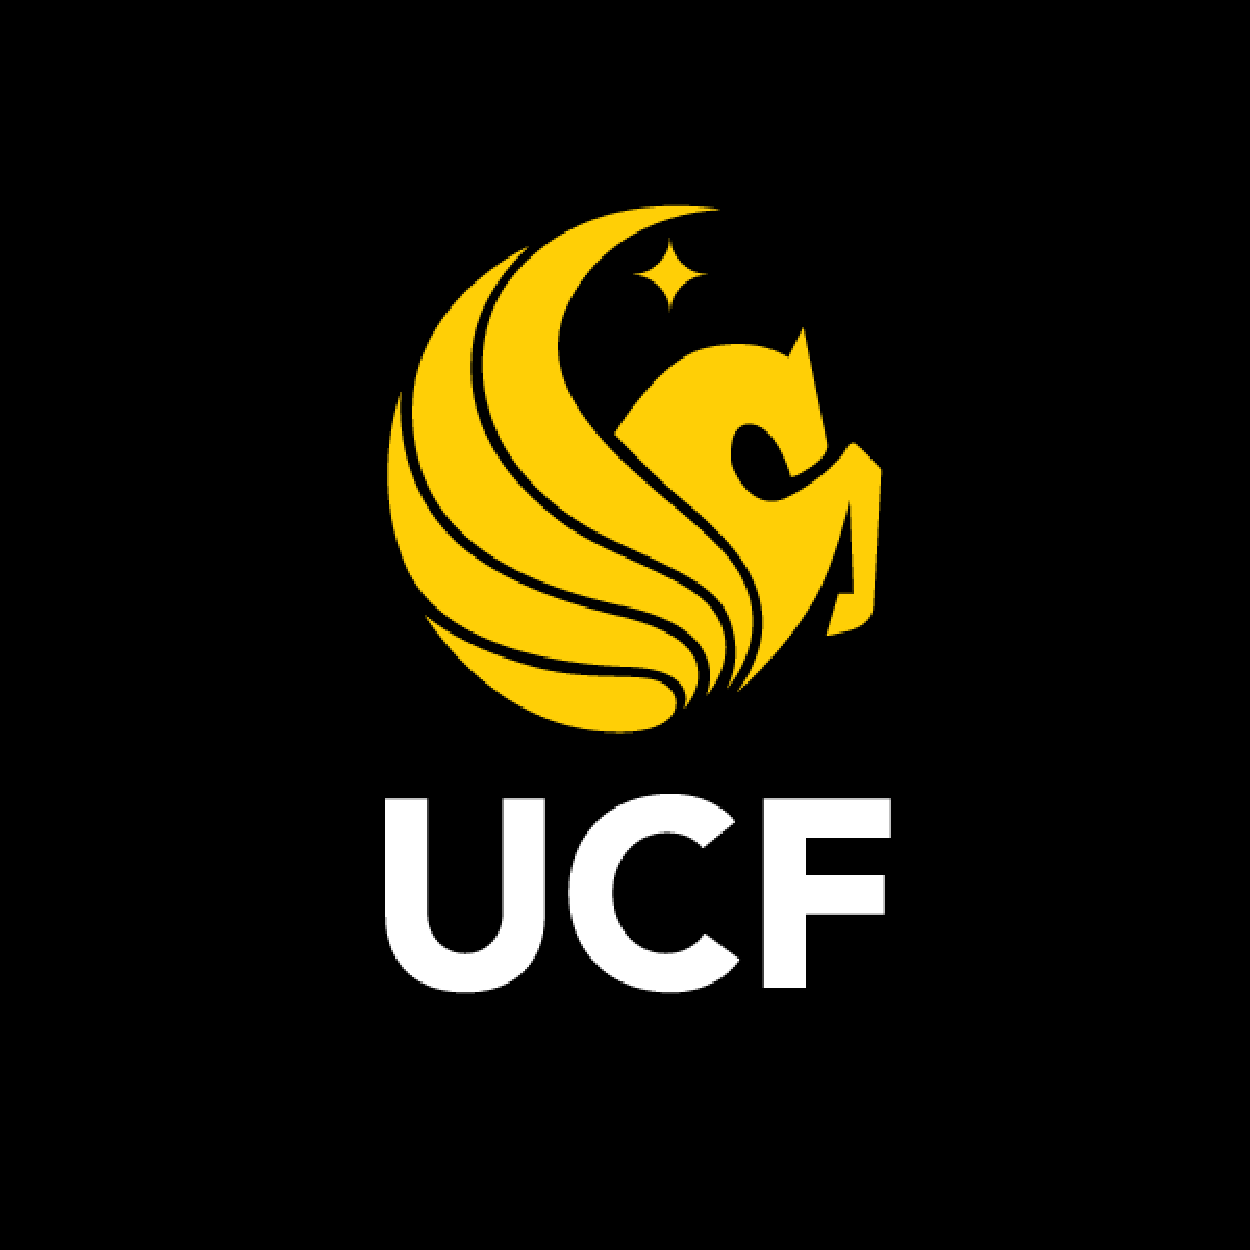 Thesis dissertation services ucf